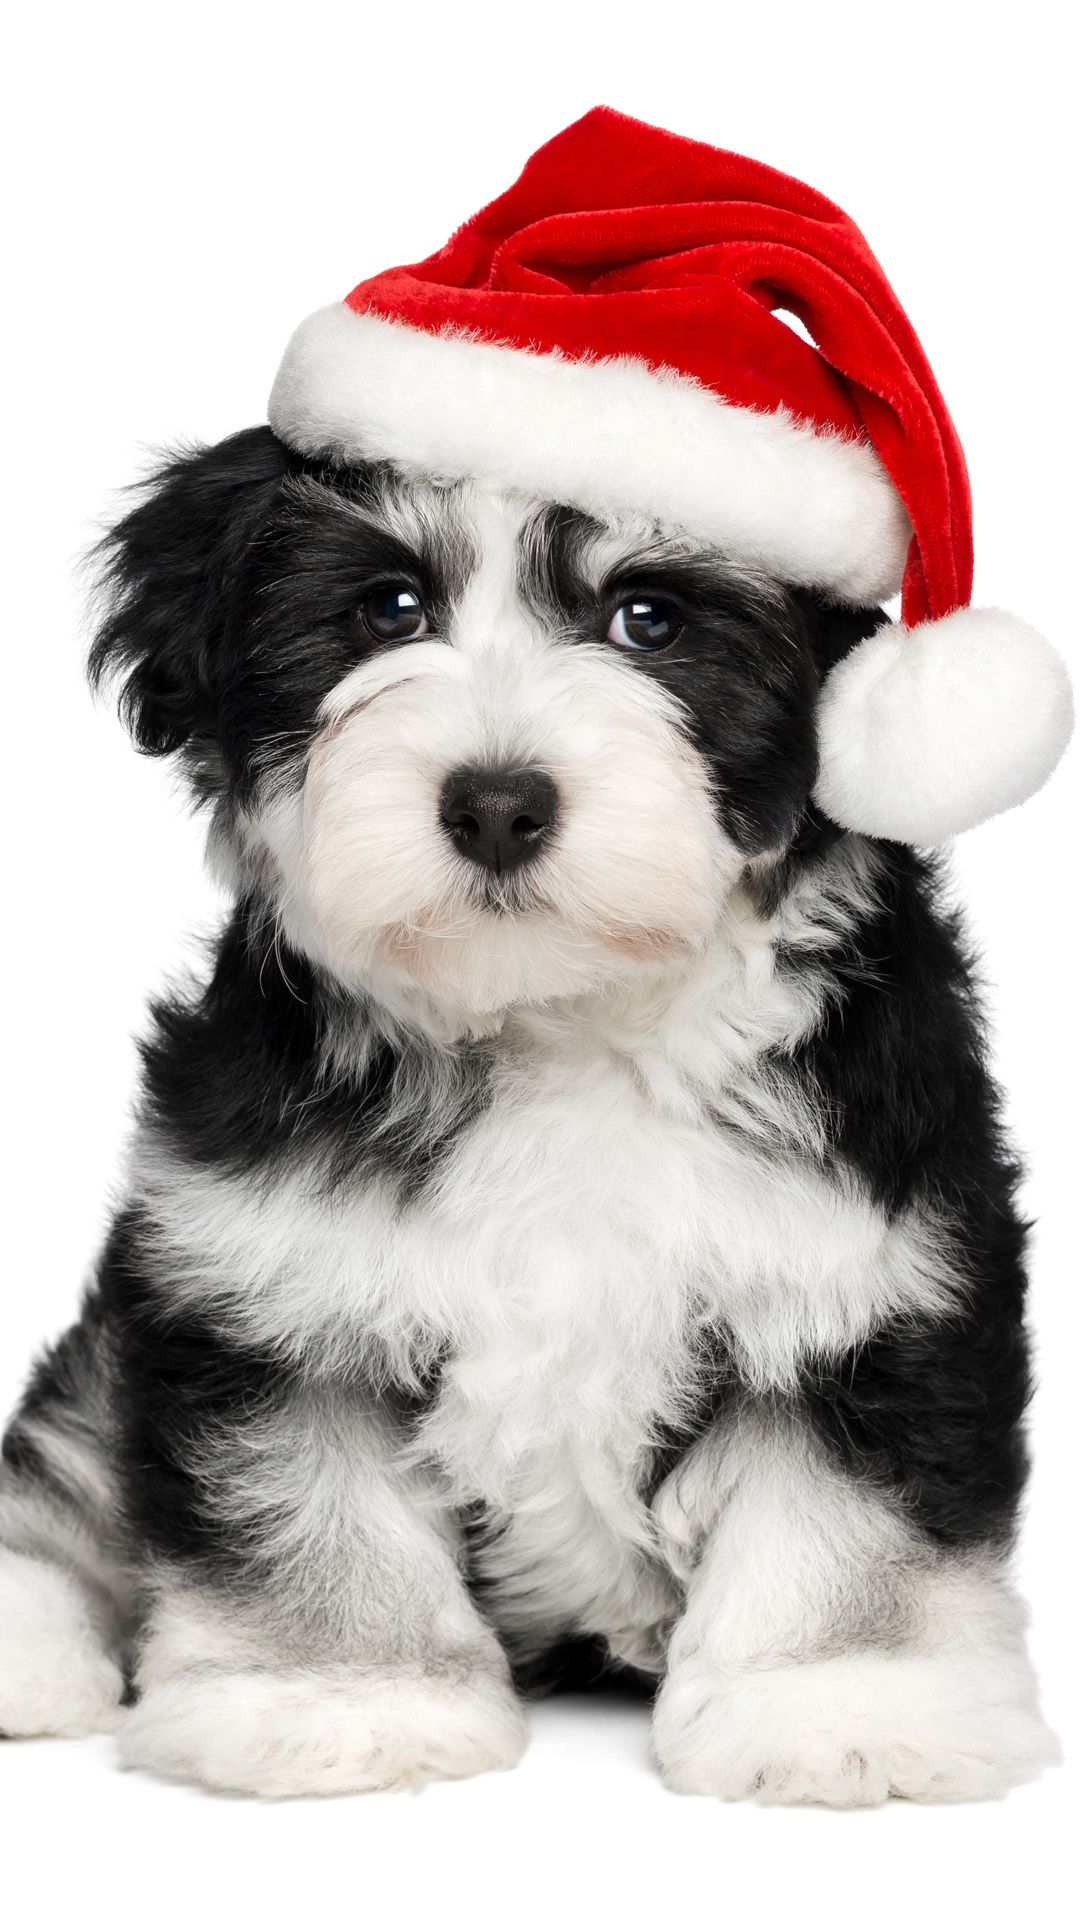 Warm Christmas Dog iPhone 6 wallpaper Dogs, puppies